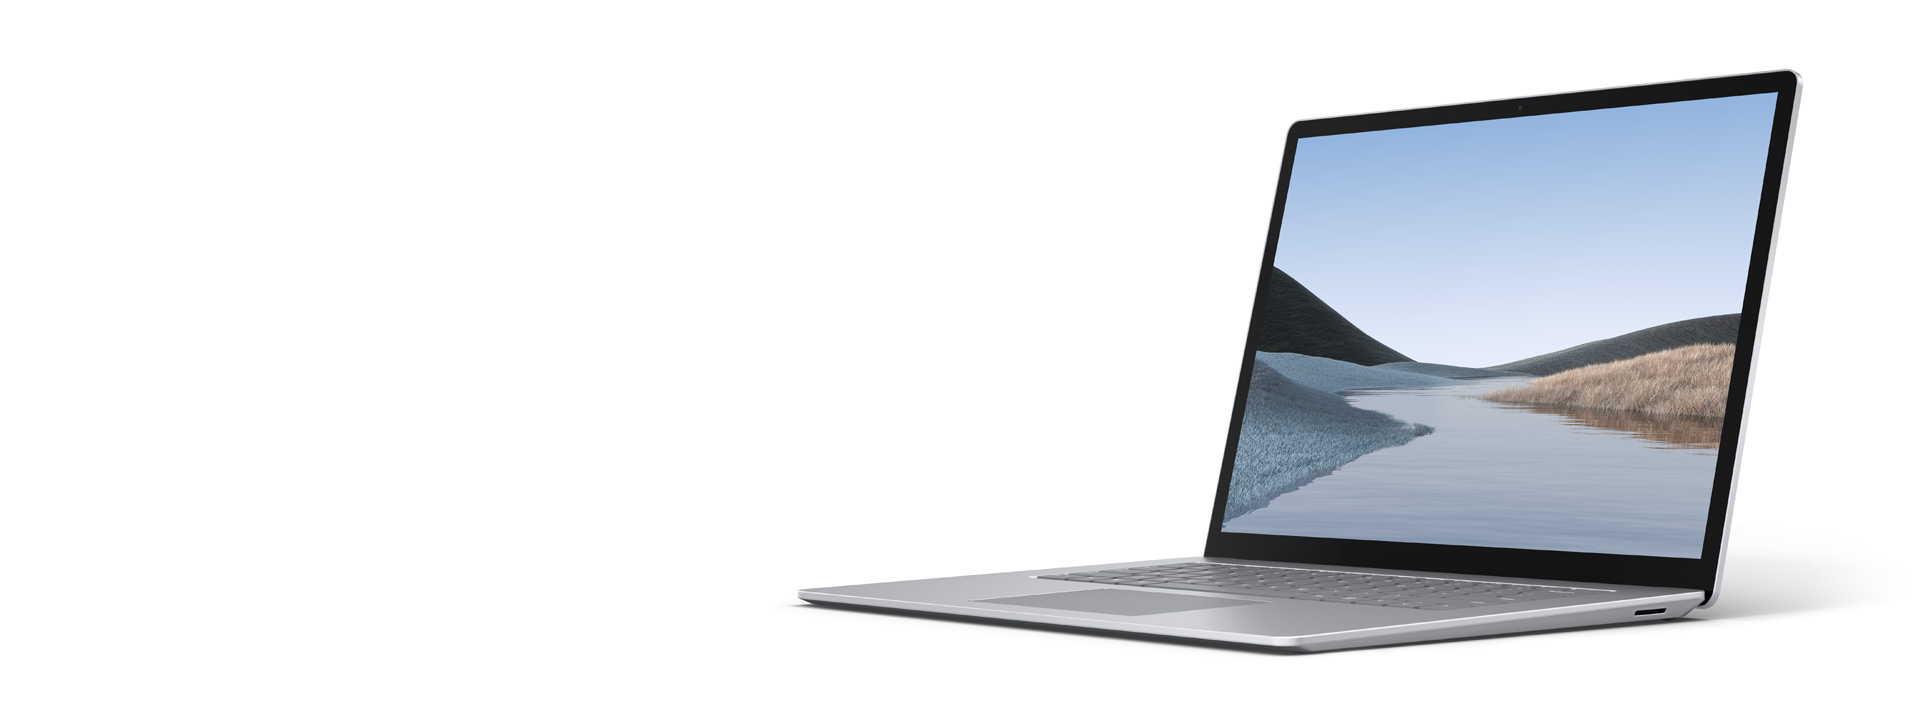 Surface Laptop 3 (15 Zoll) in Platin Grau